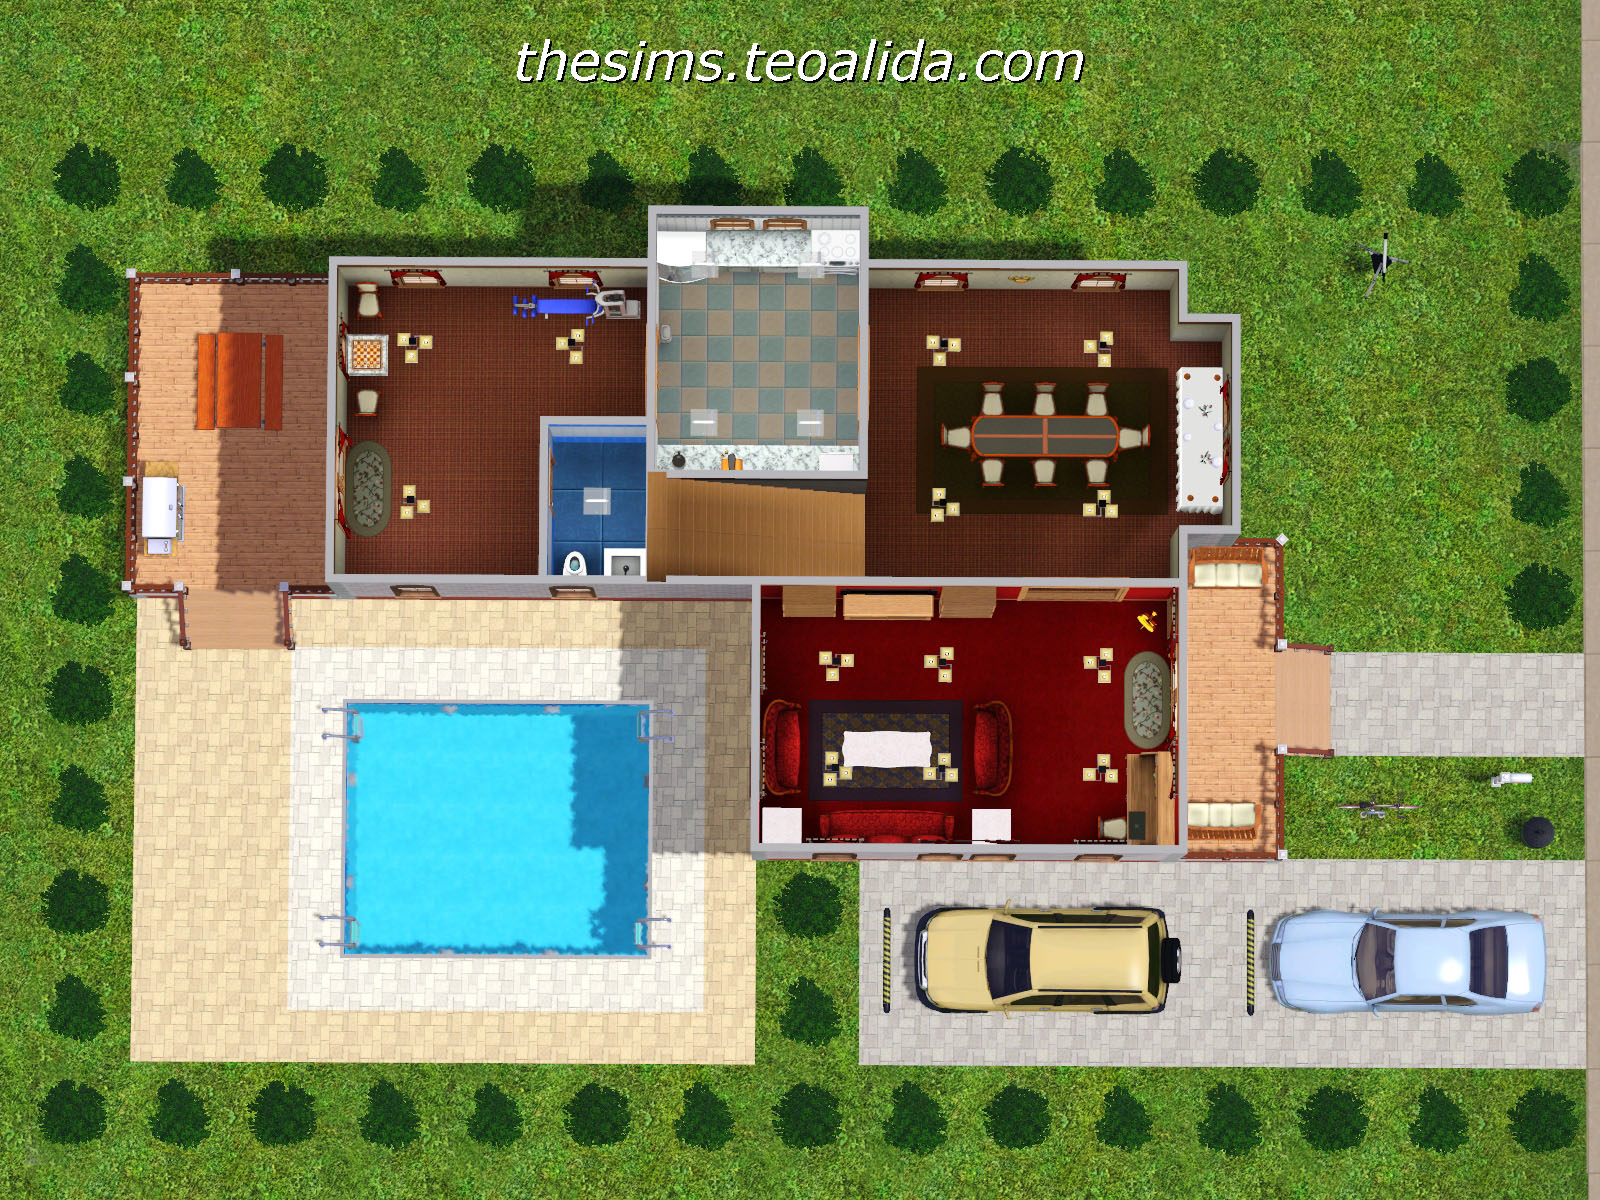 L-Shaped House | The Sims fan page